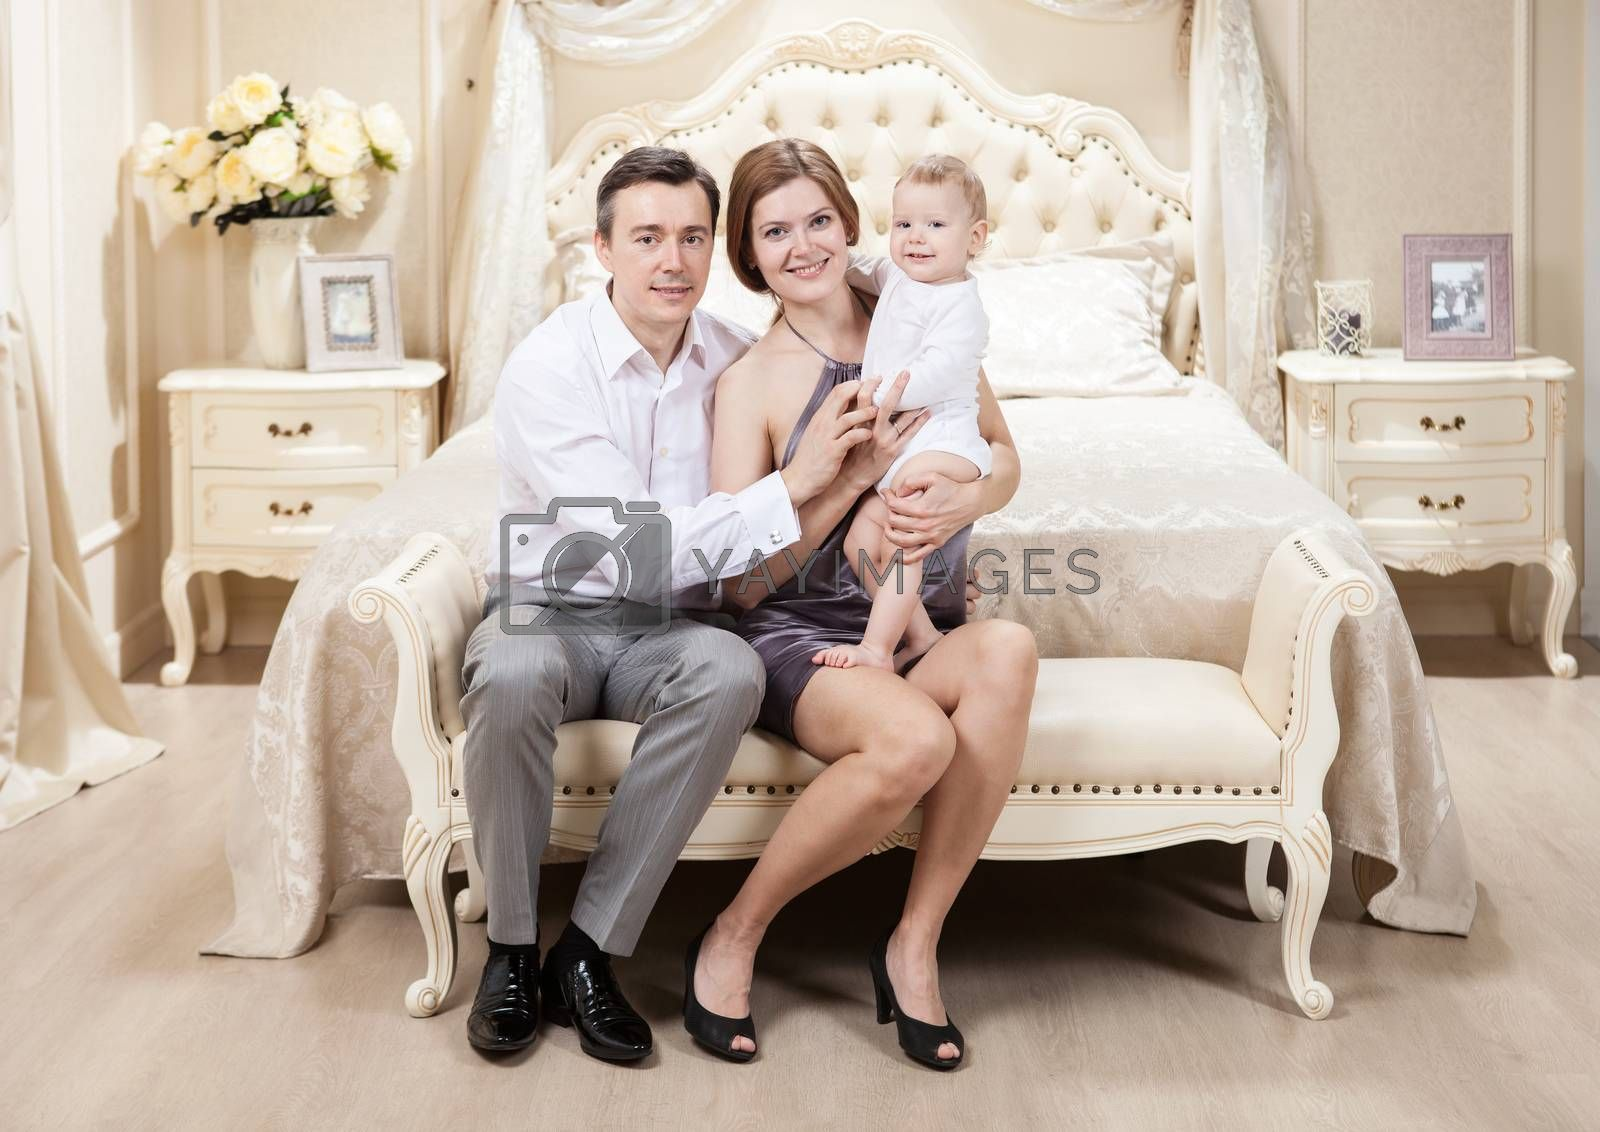 Young happy family with a baby on bed at home